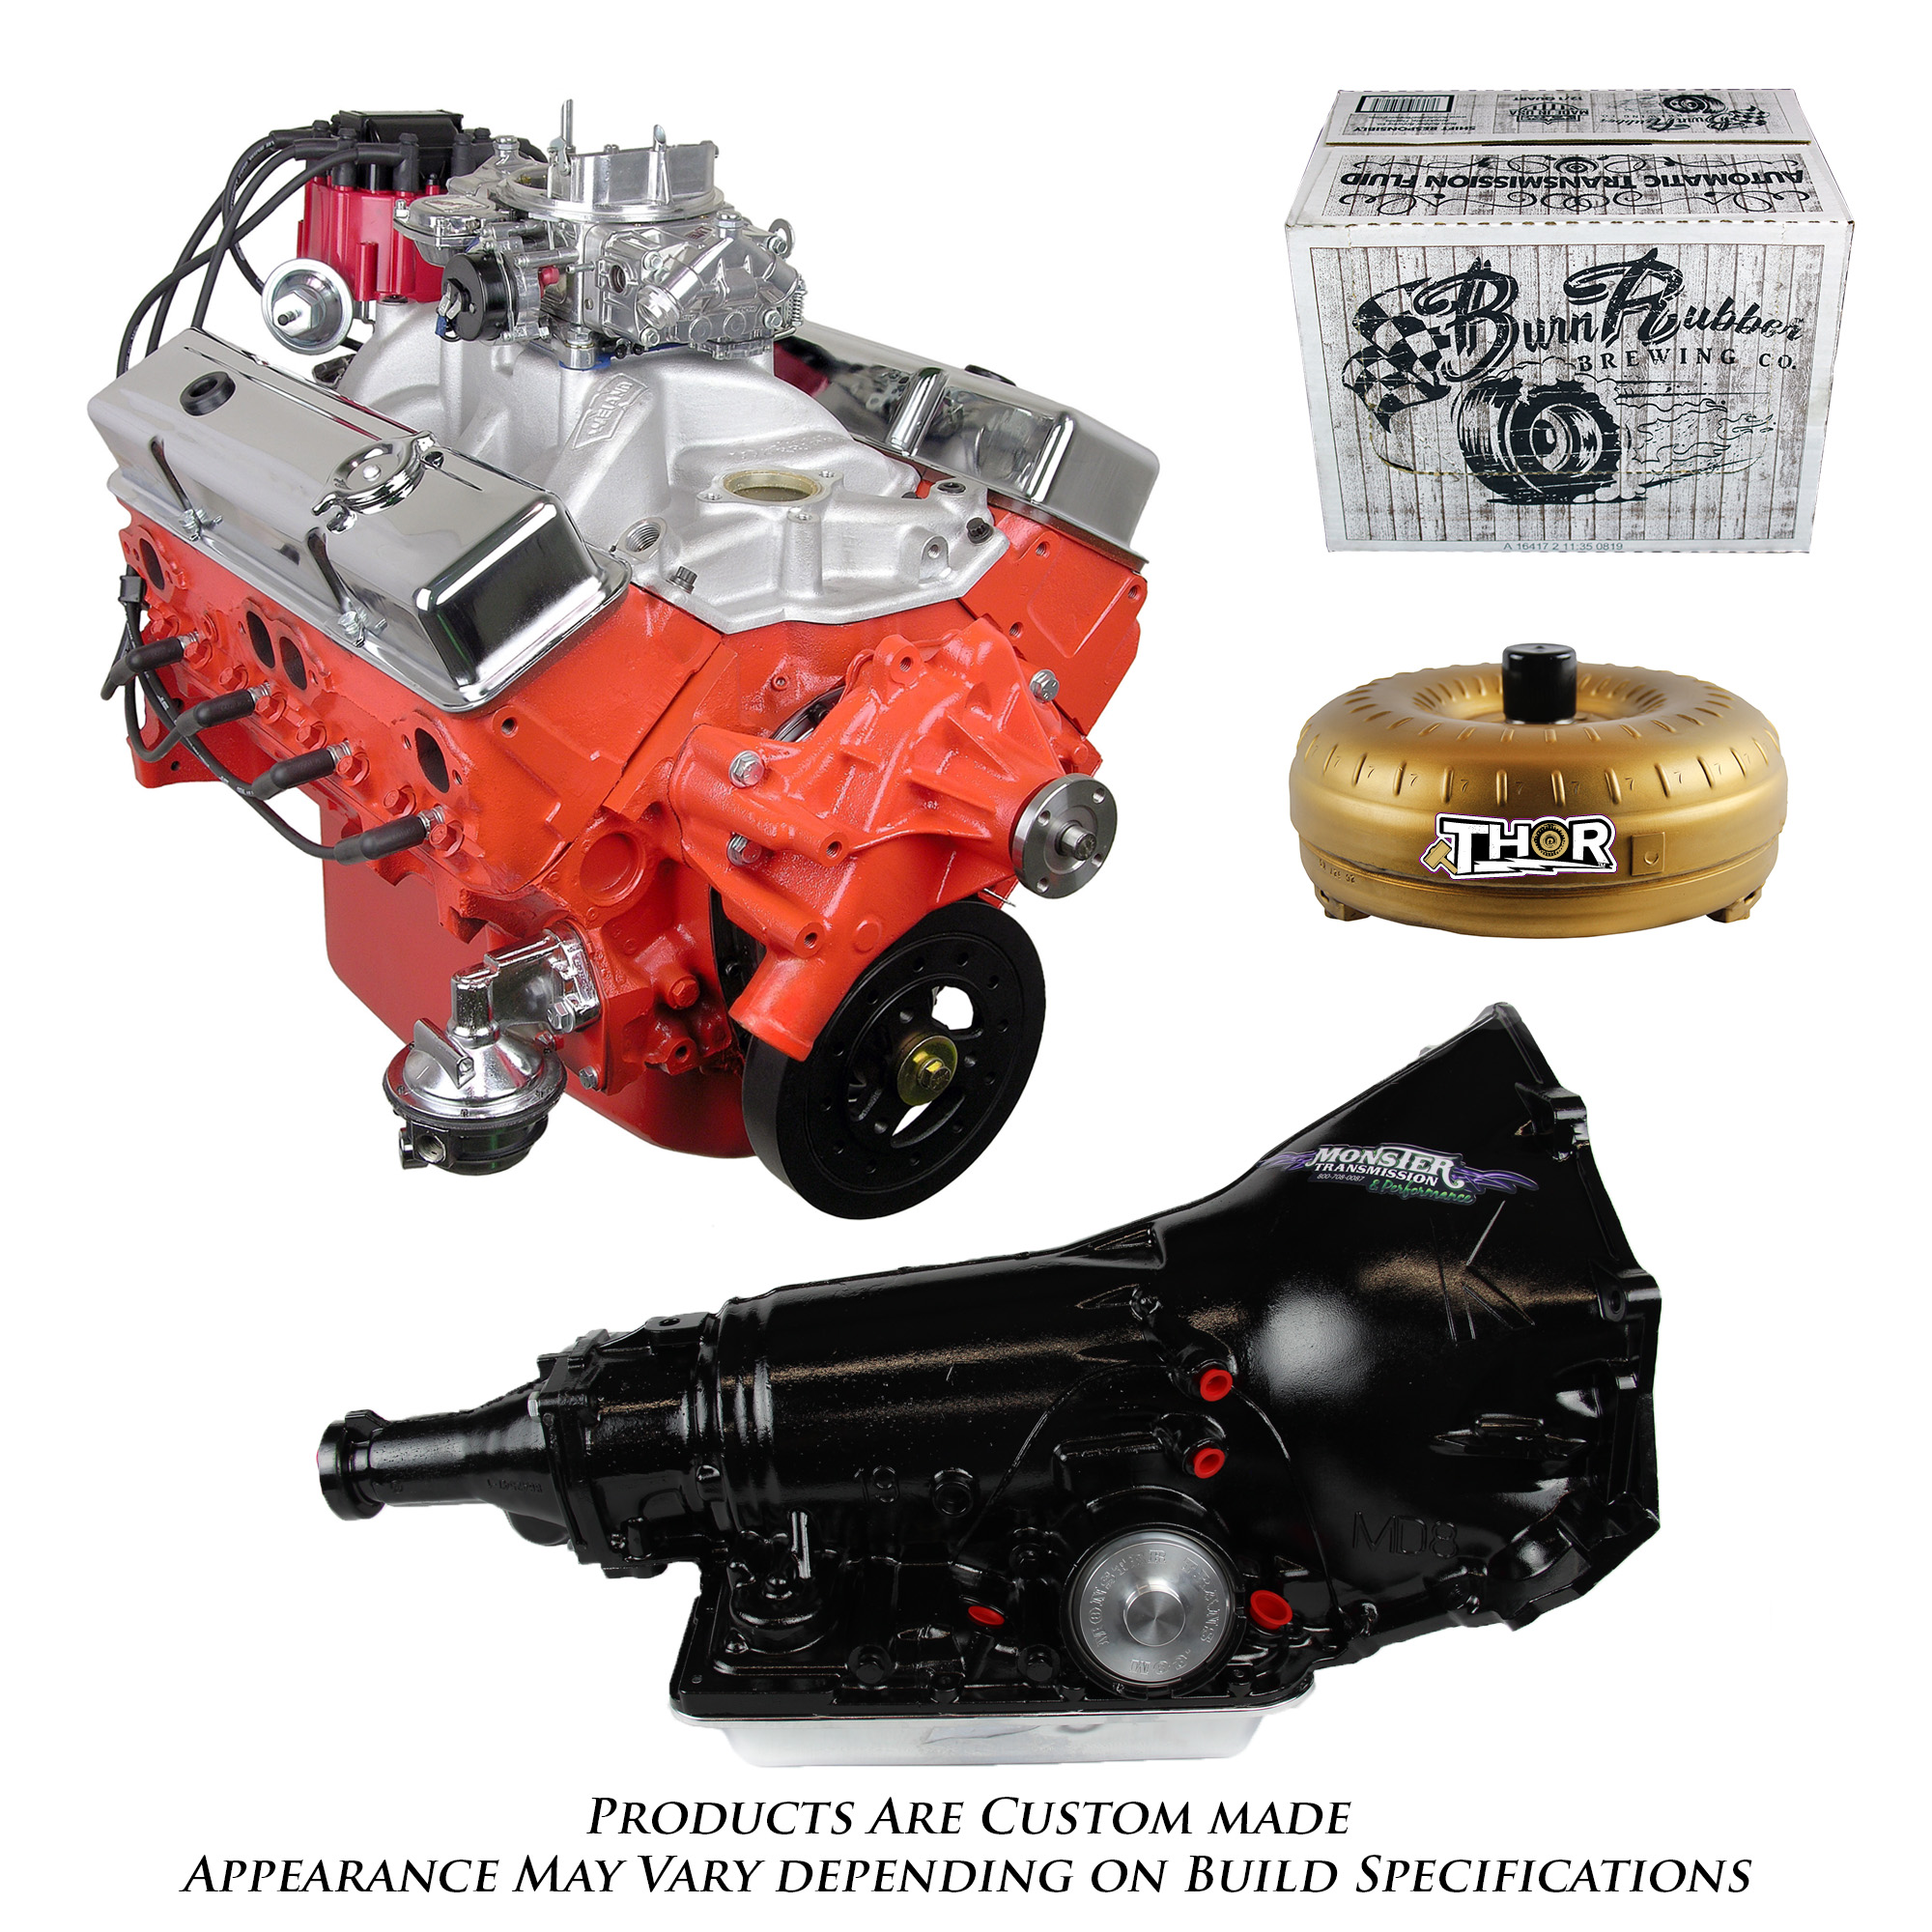 Monster Powertrain Package Chevy 350 Engine And 700R4 Transmission